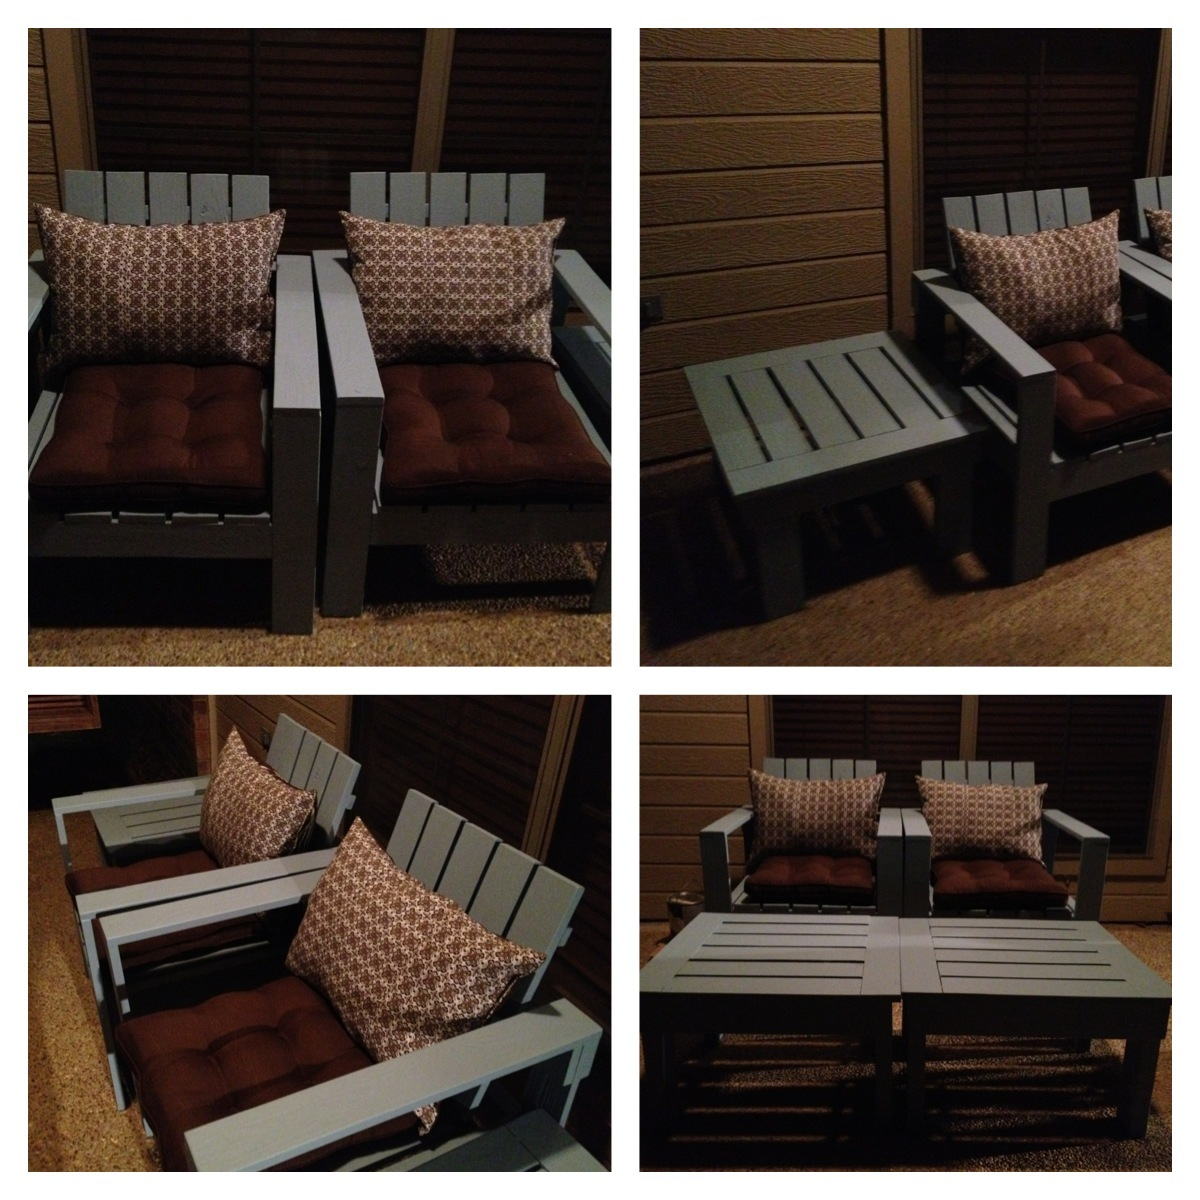 We wanted outdoor furniture but did not want to pay over $500. Very